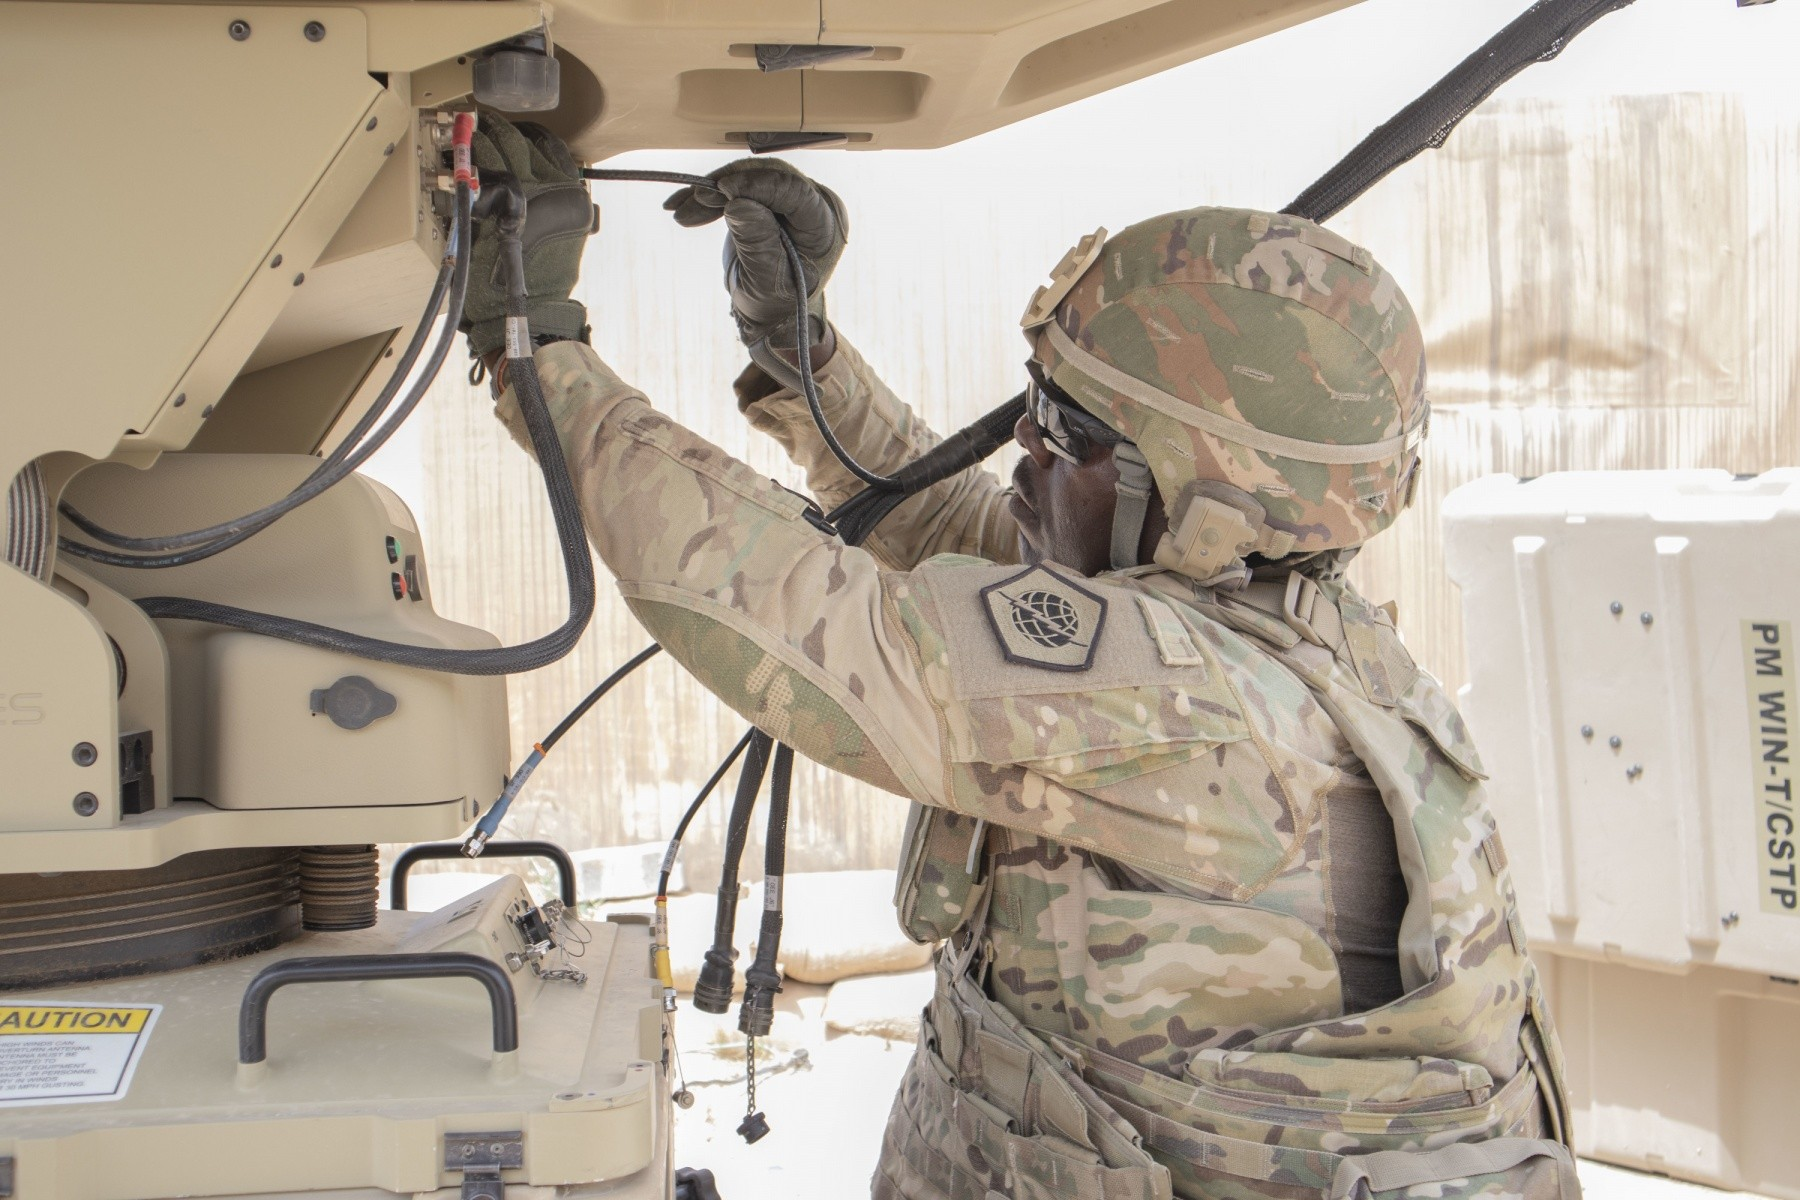 98th Conducts Emergency Deployment Readiness Exercises while